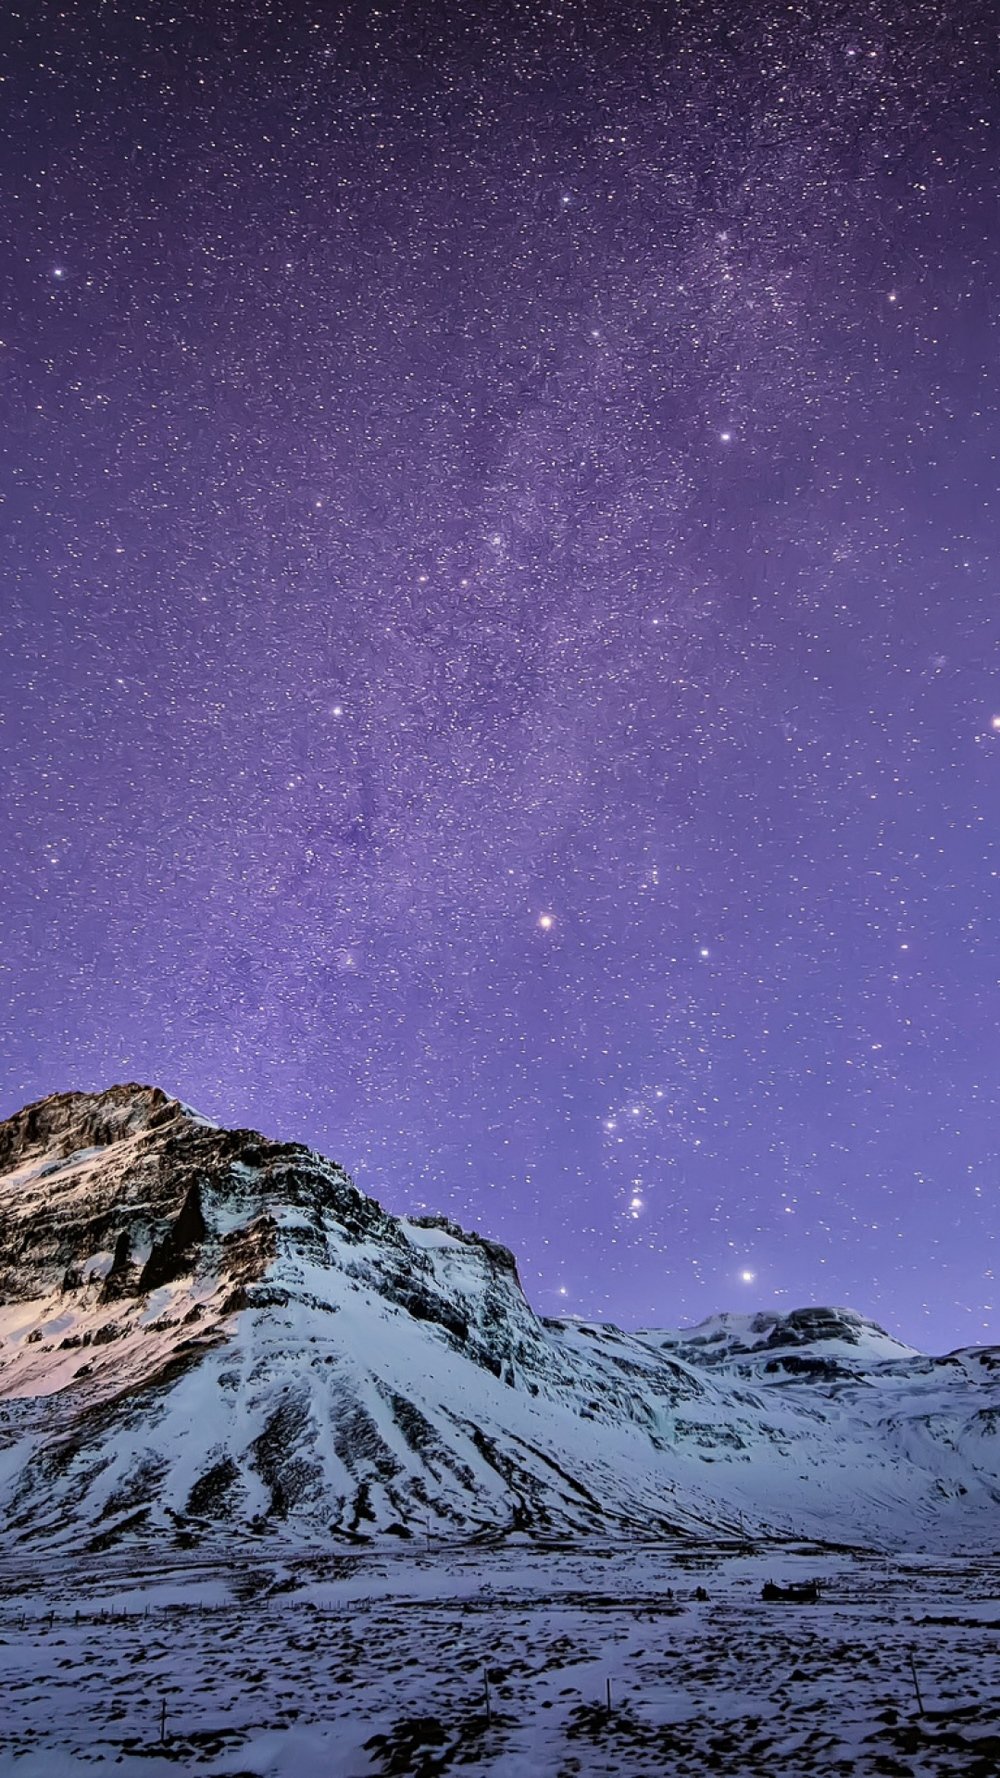 Snow-Mountain-Stars-Wallpaper-iPhone-6-Plus.jpg